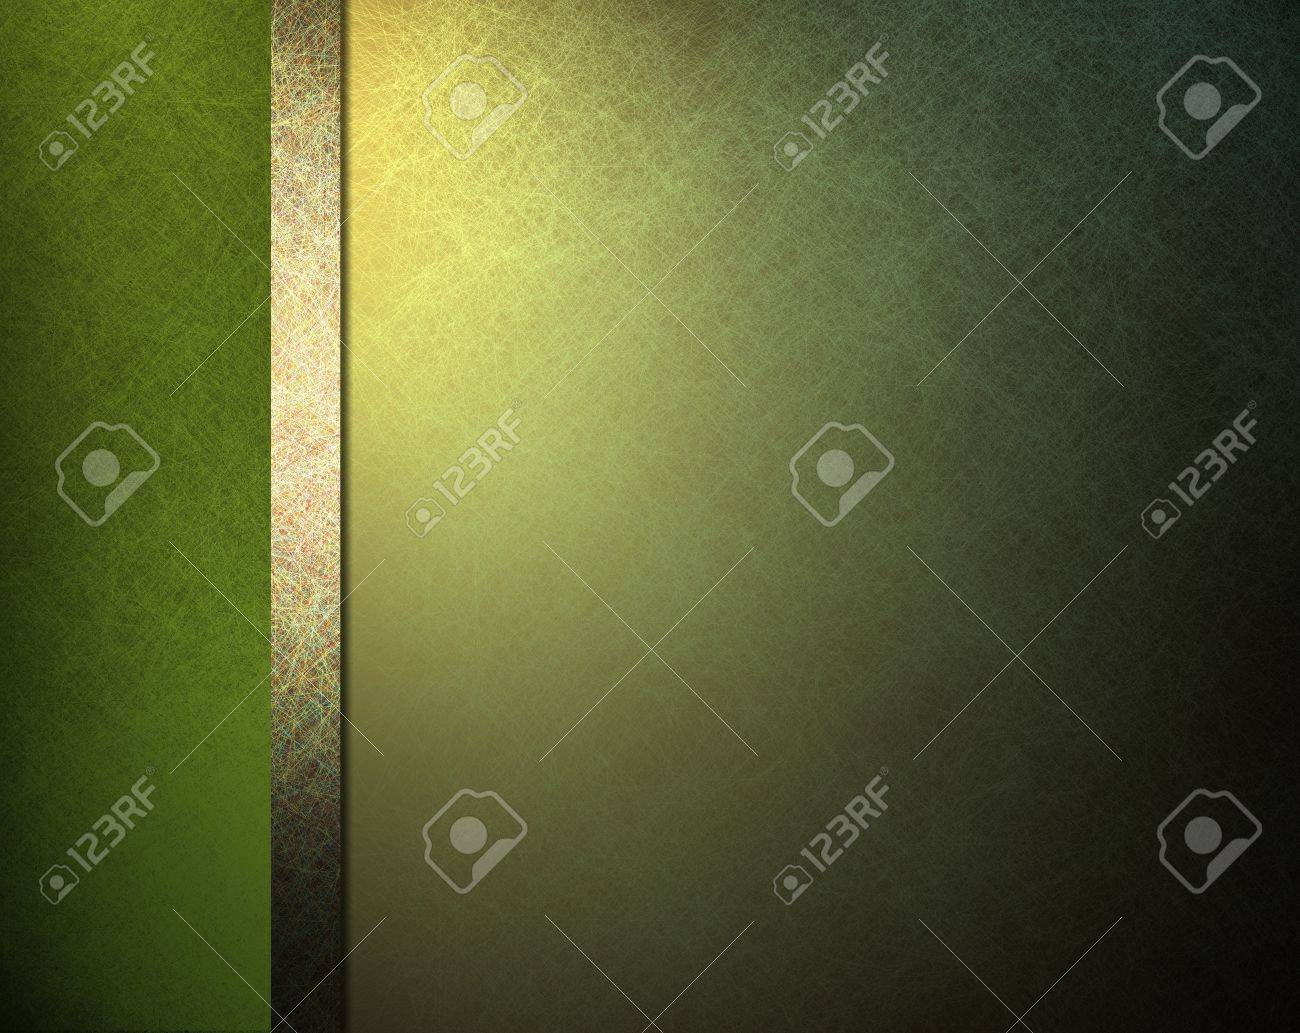 pale light and dark green background with yellow gold highlight and ribbon stipe in website template layout or formal classic menu backdrop with copyspace for St  Patricks day Stock Photo - 12624010